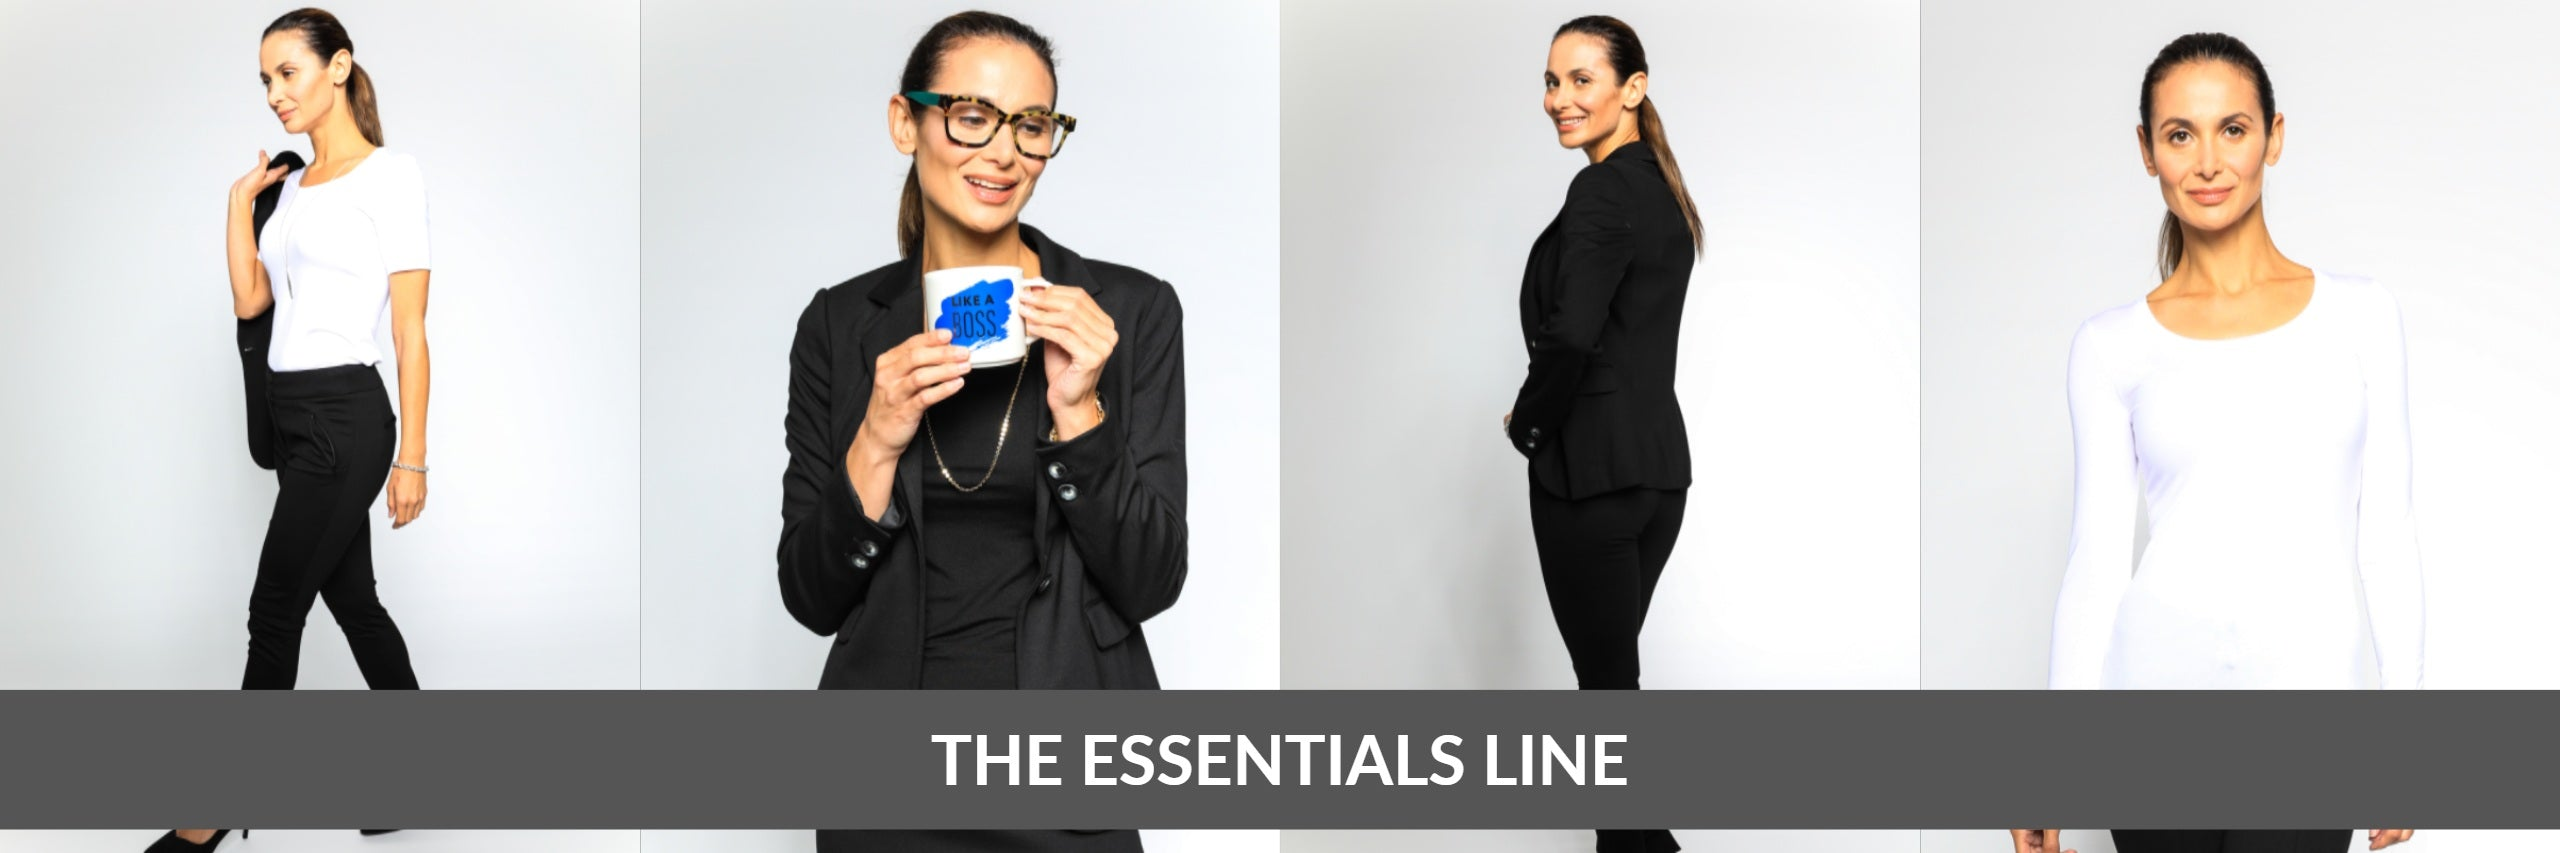 the essentials line by robin b.